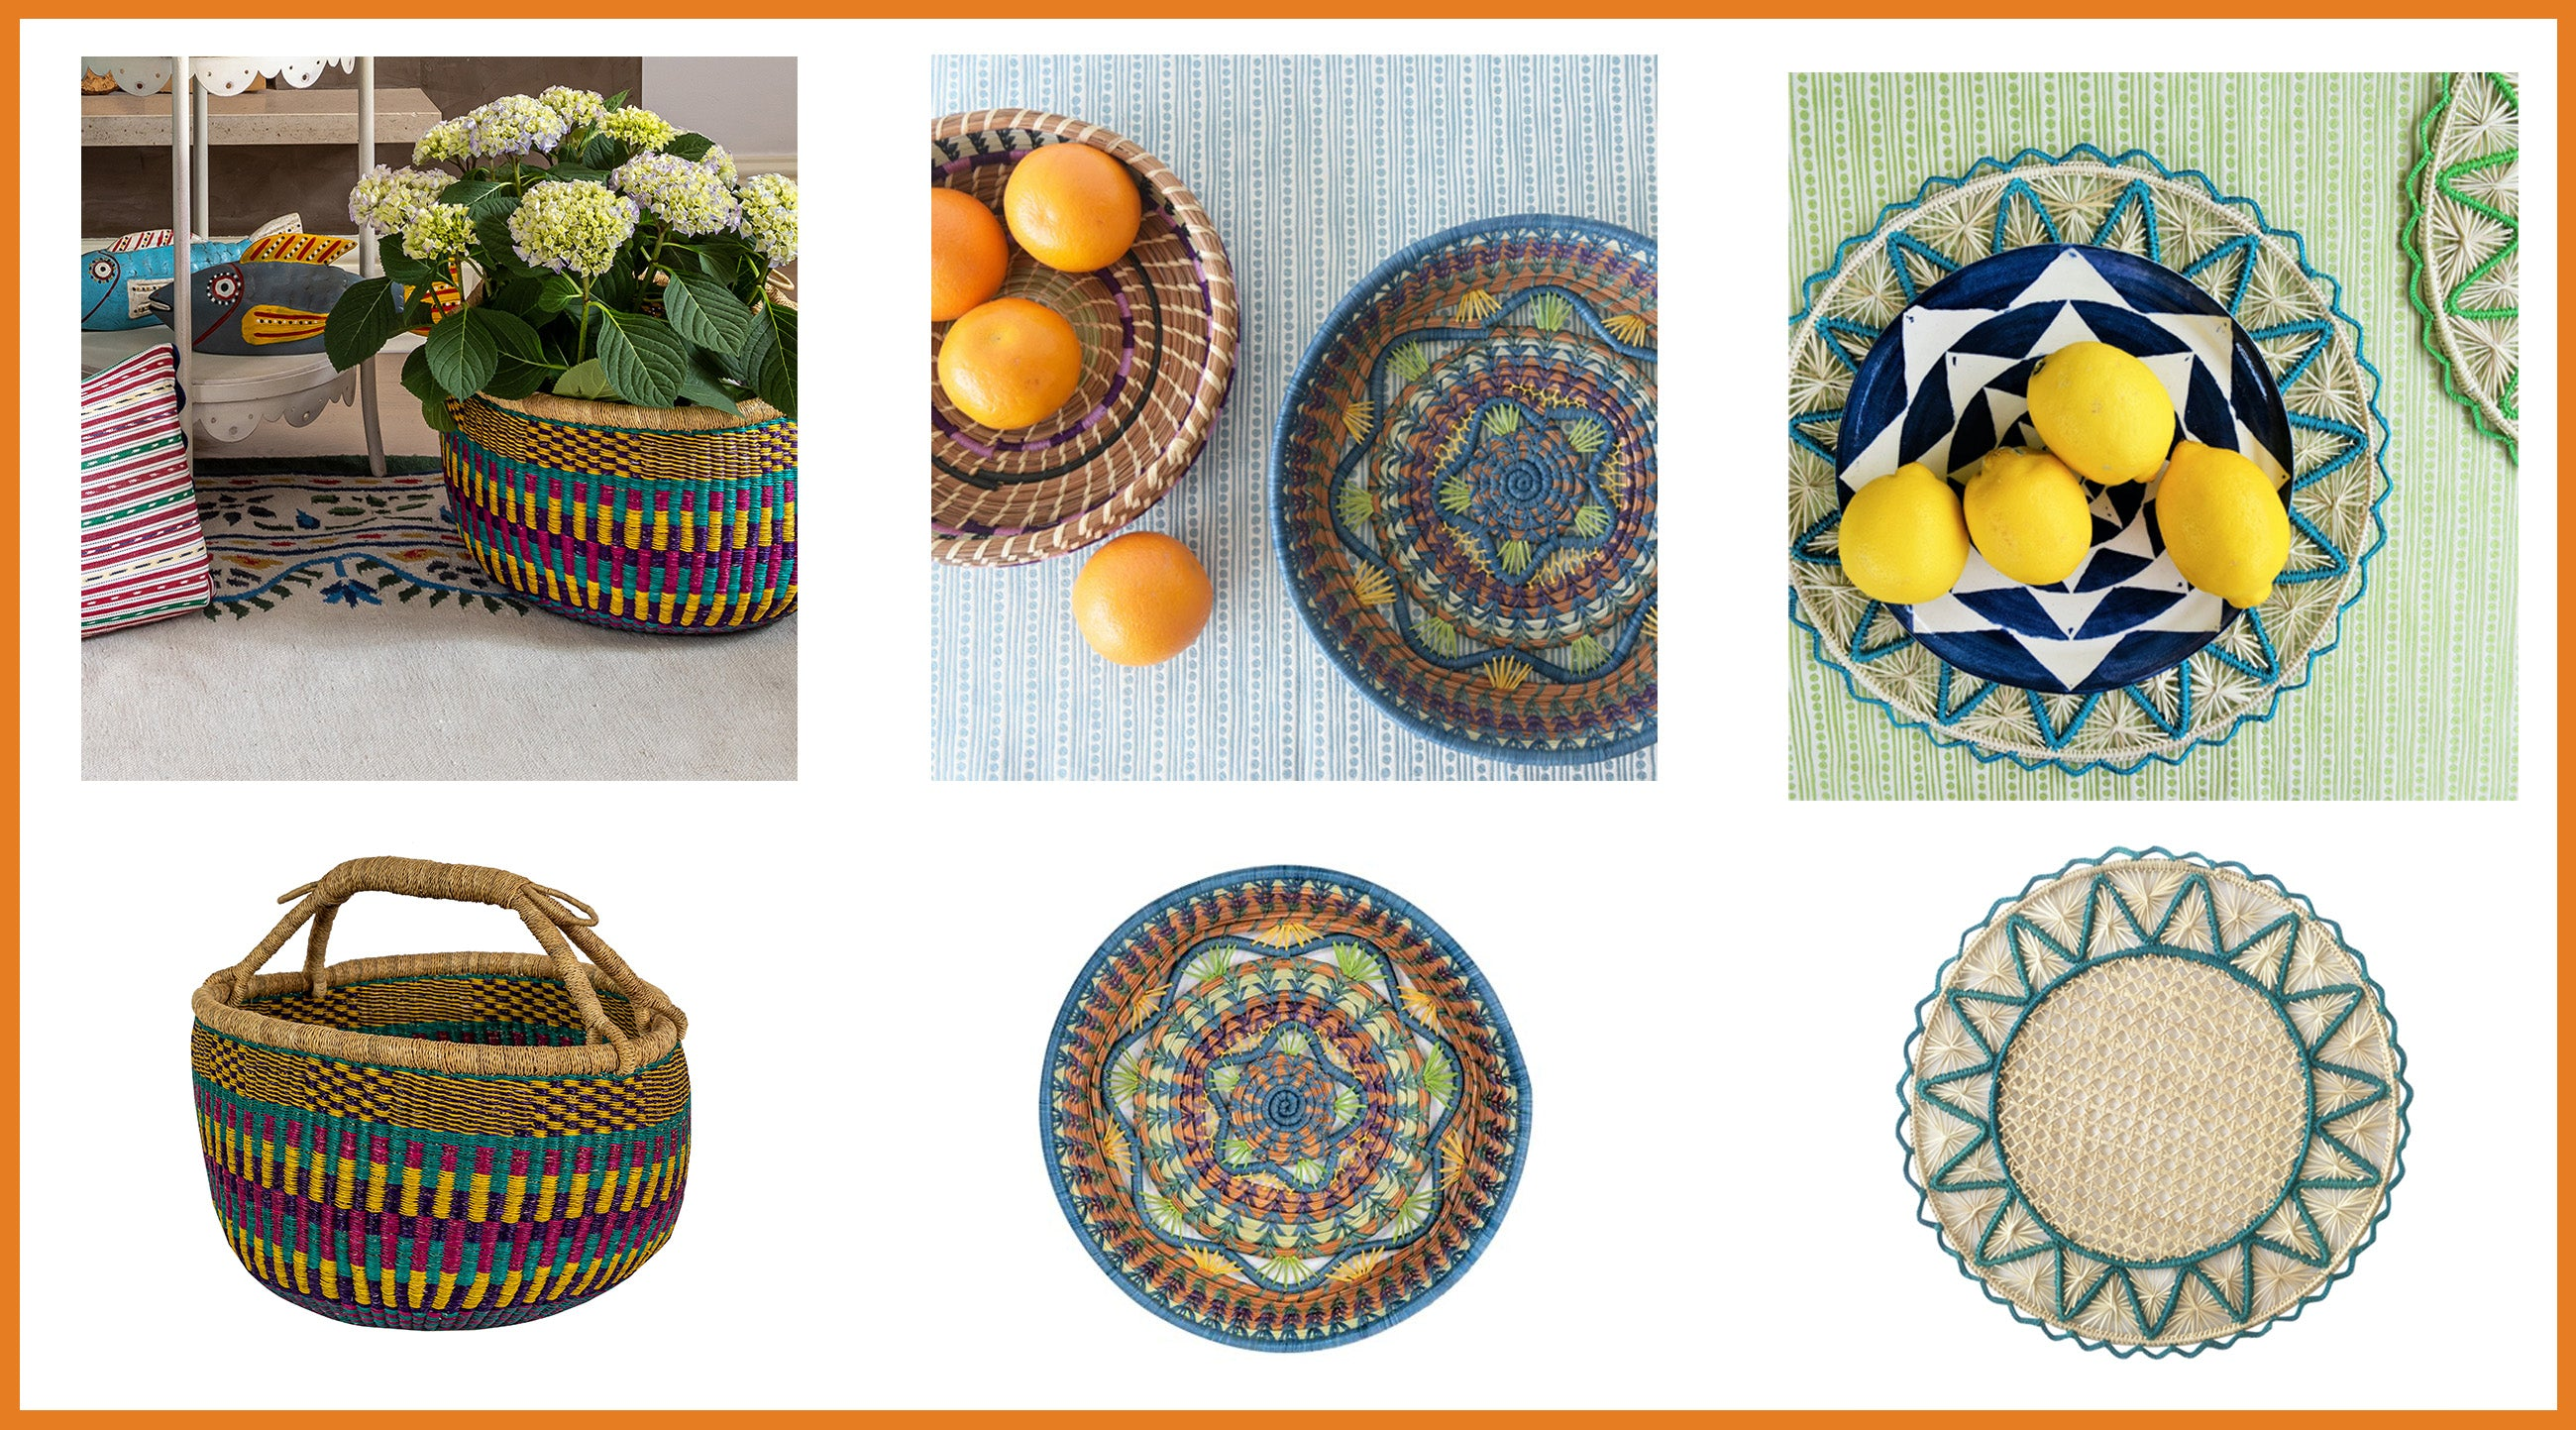 Shop wicklewood decorative accents with natural fibers handcrafted in South America